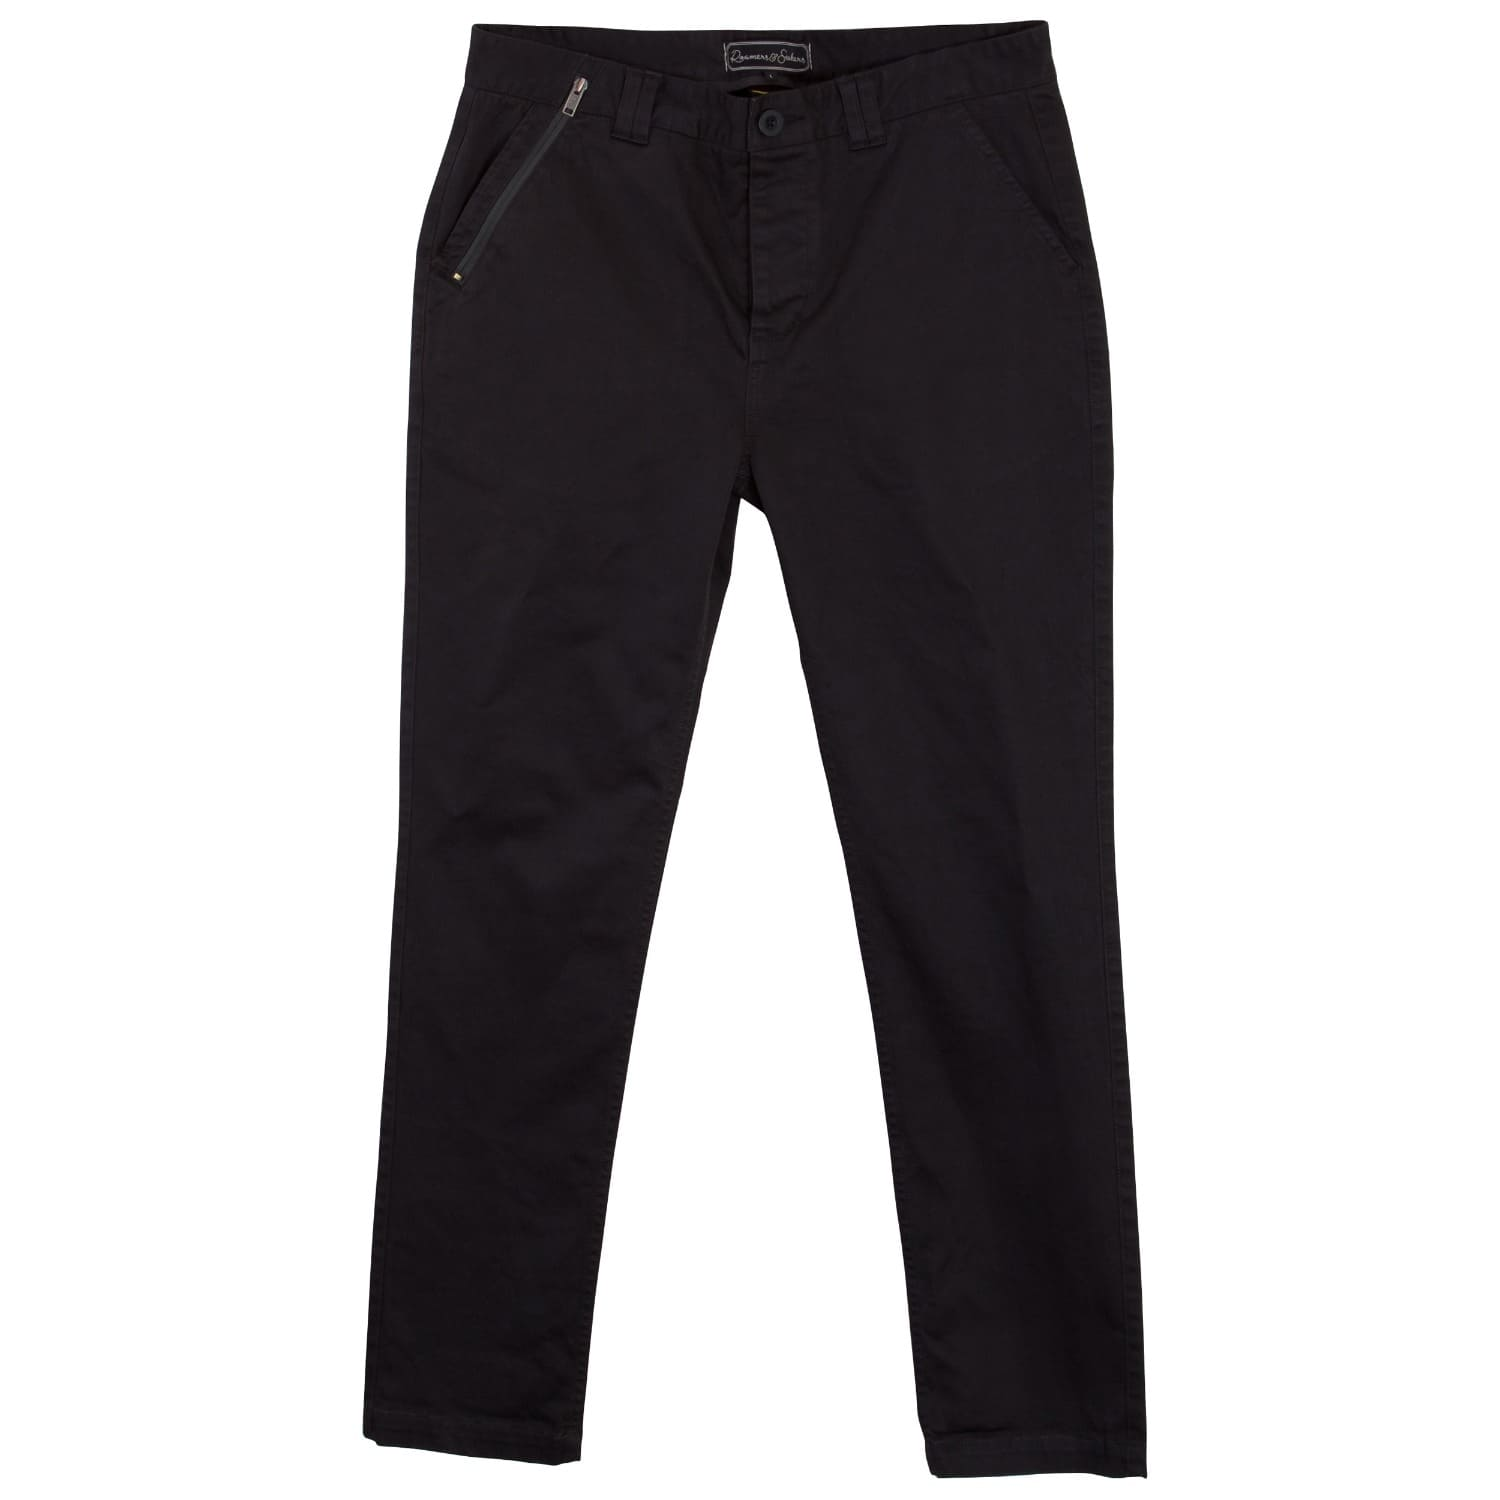 393c57ce0 Only Black Chinos by Roamers & Seekers